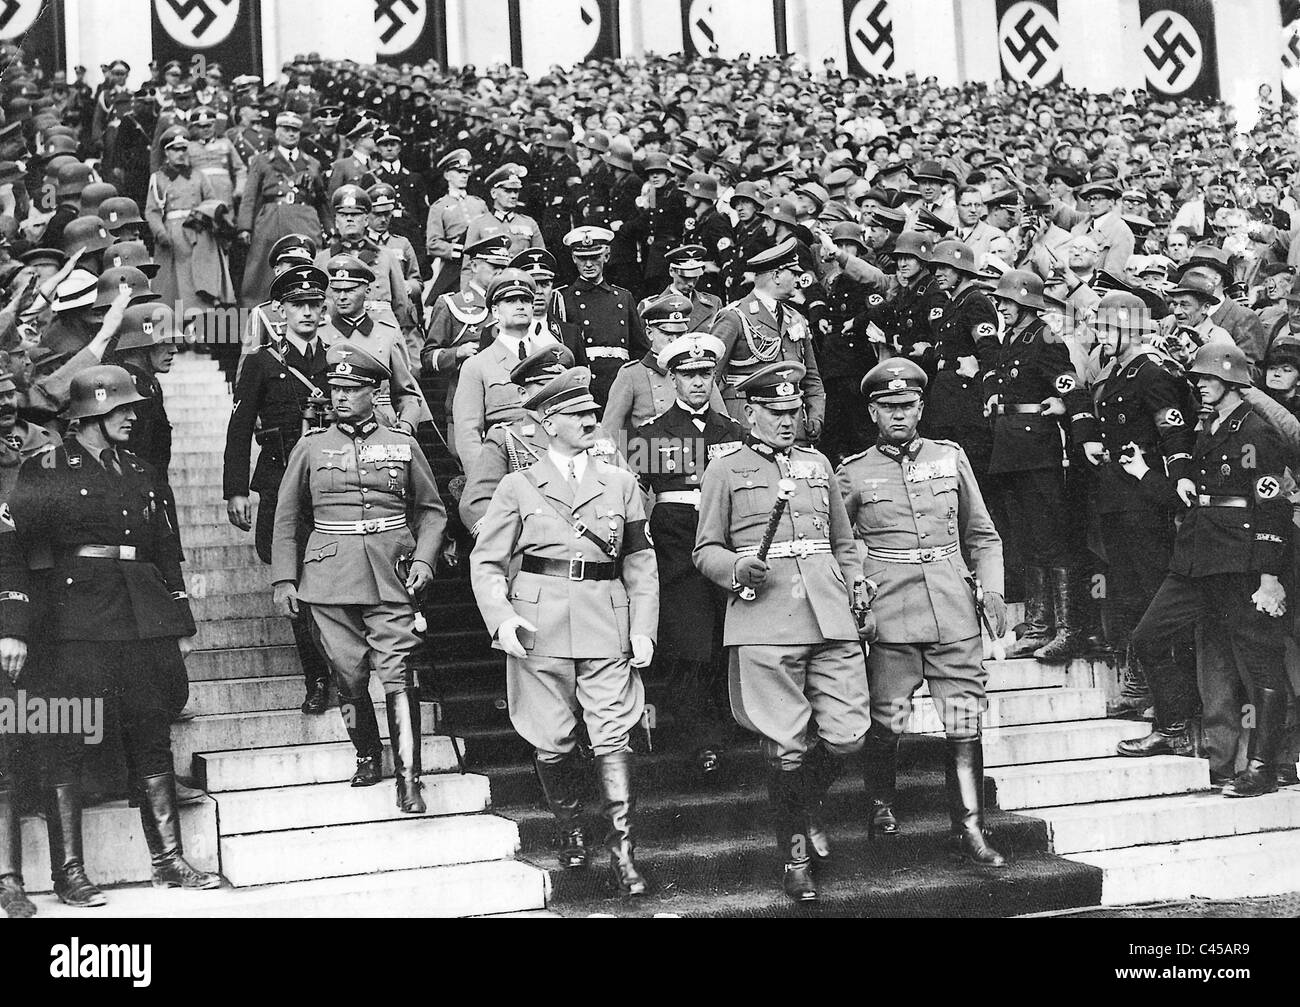 adolf hitler and civil rights movement When paris fell to the nazis on june 14, 1940, england began to steel itself for  the  in his history of world war ii entitled the storm of war, andrew roberts  writes:  numerous civil rights thinkers to write his i have a dream speech,  one of.